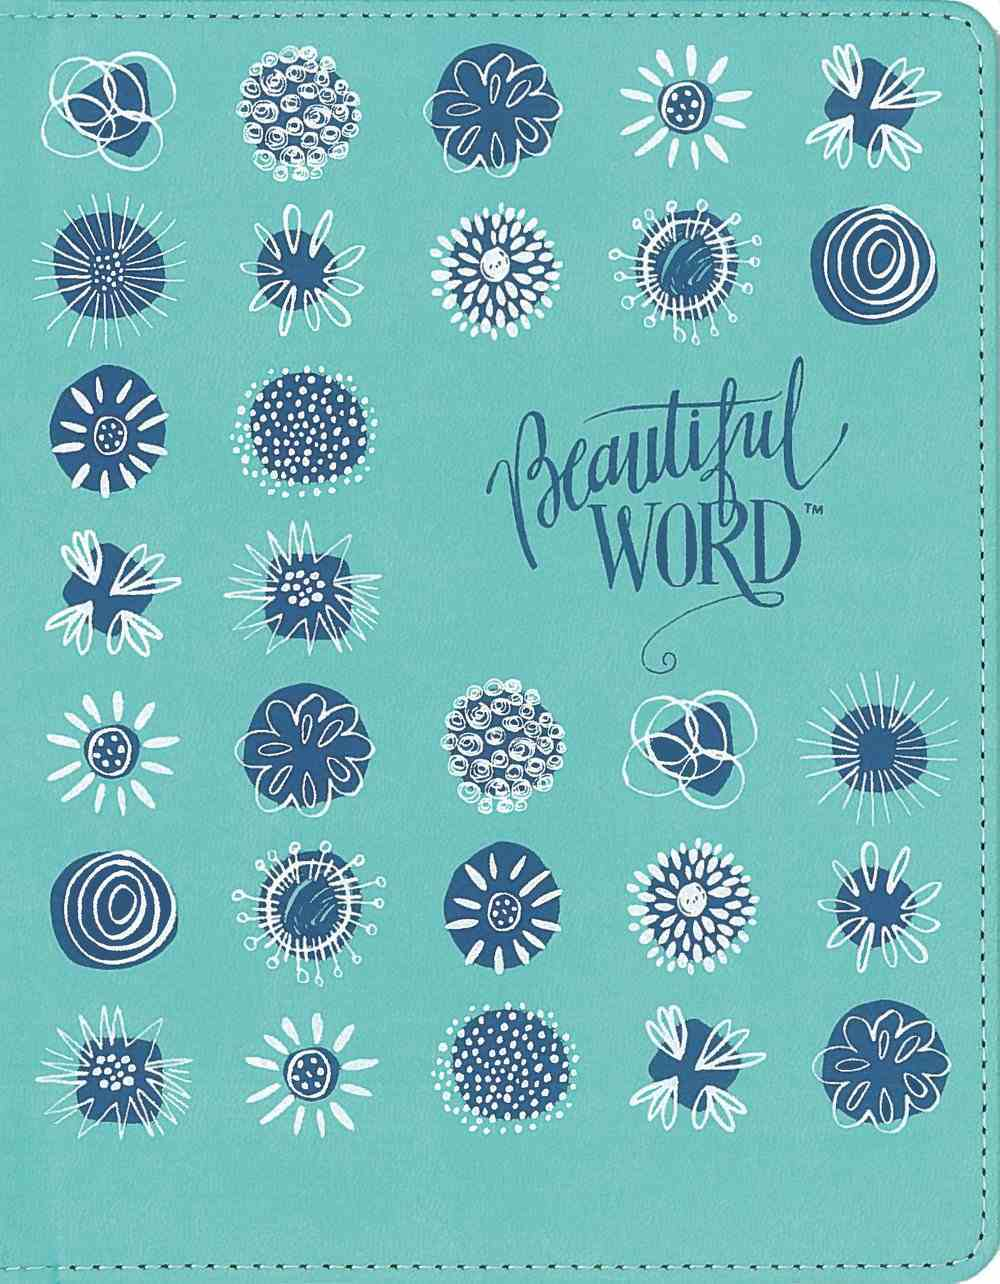 NIV Beautiul Word Coloring Bible For Girls Pencil/Sticker Gift Set Teal Imitation Leather Over Hardback